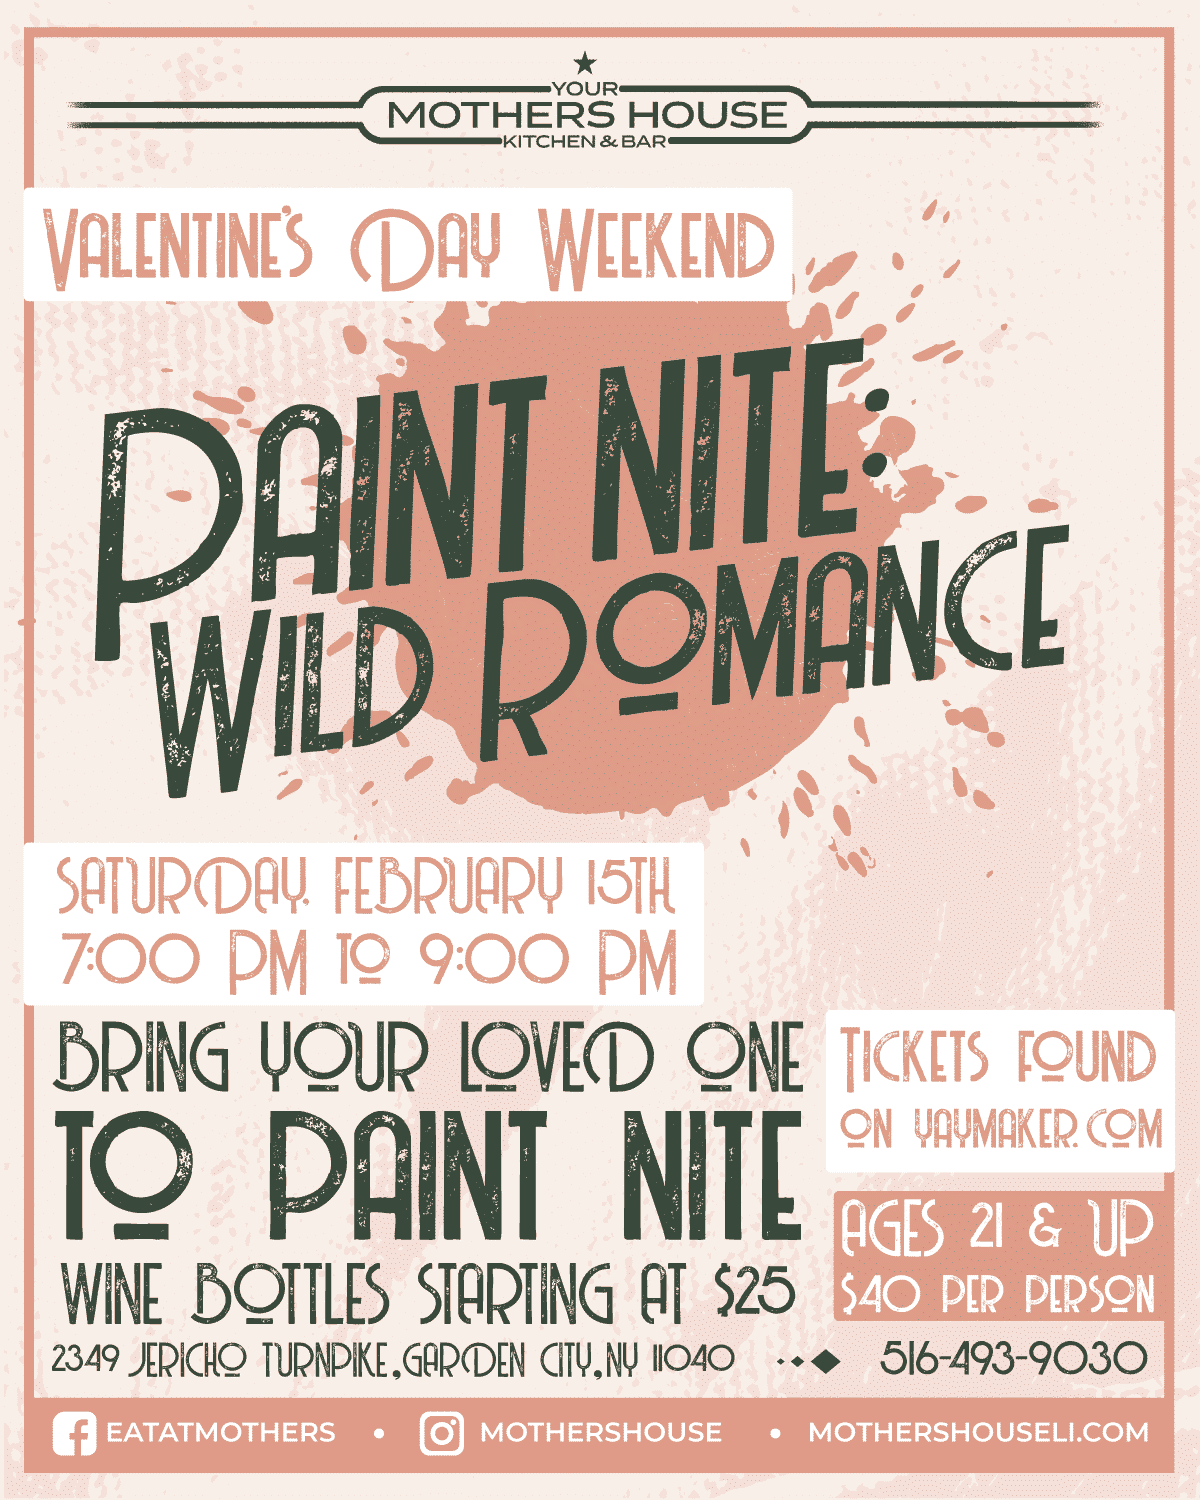 Flyer for Valentine's Day Weekend Paint Nite: Wild Romance. Saturday, February 15th at 7pm to 9pm. Bring your loved one to paint night. Wine bottles starting at $25. Tickets found on yaymaker.com, ages 21 and up, $40 per person.